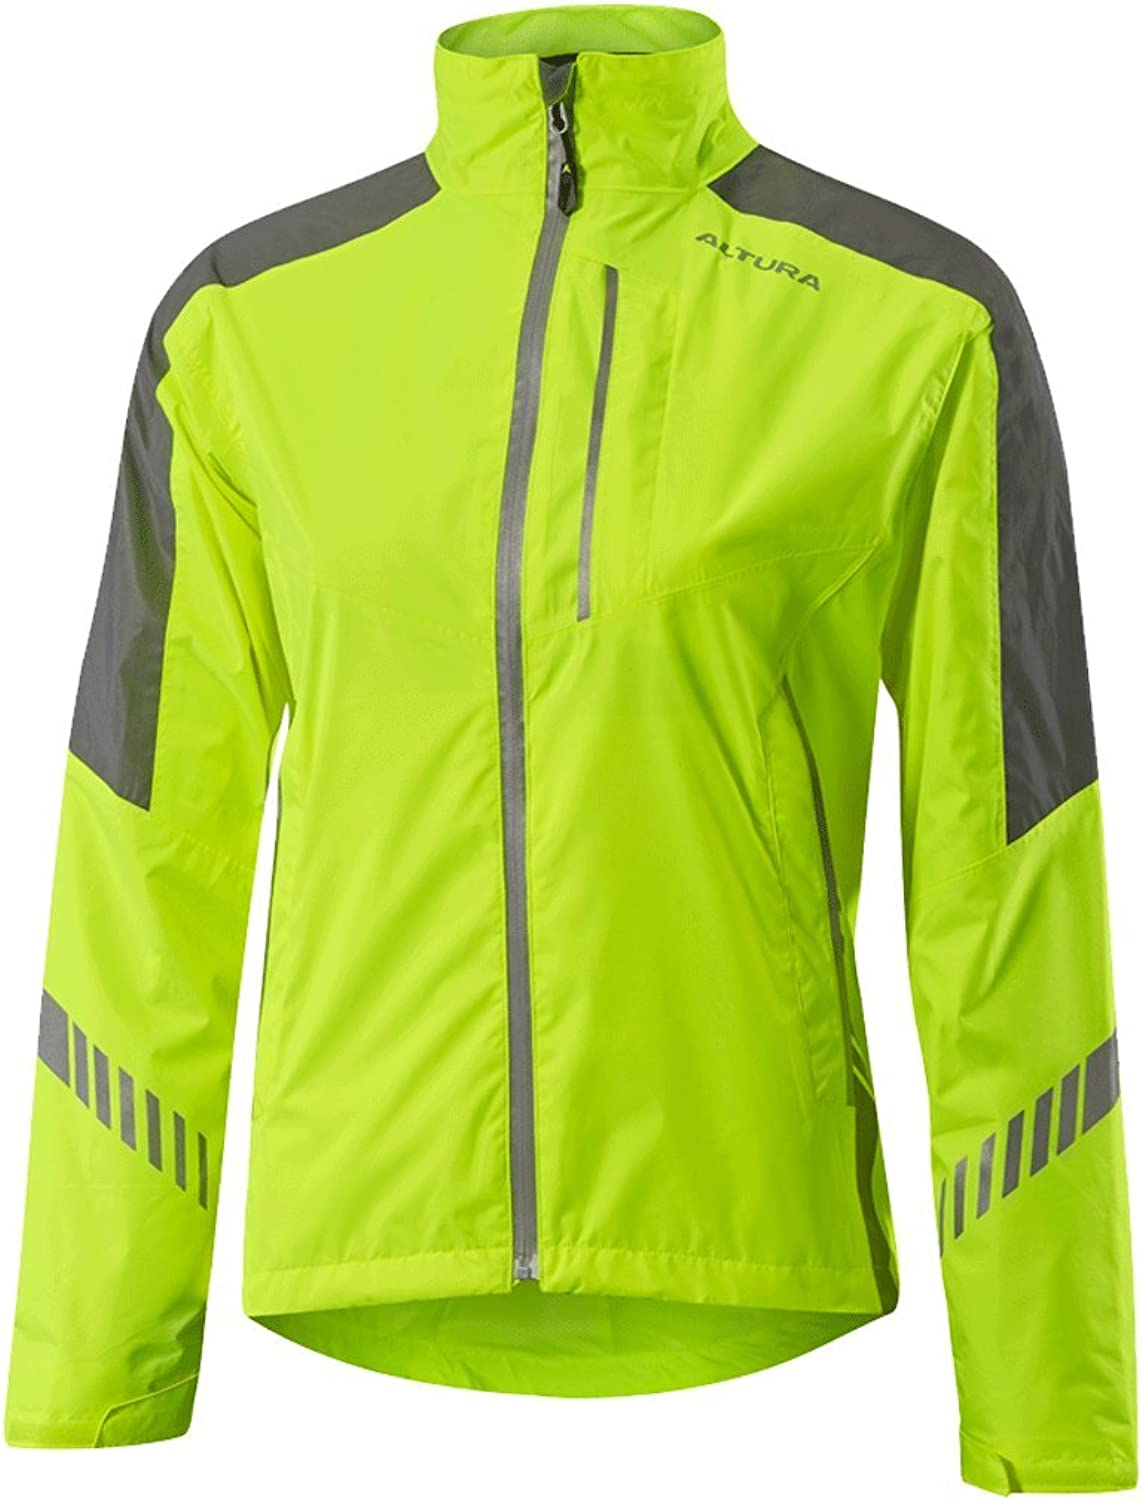 Altura HiViz Yellow 2017 Nightvision 3 Womens Cycling Waterproof Jacket